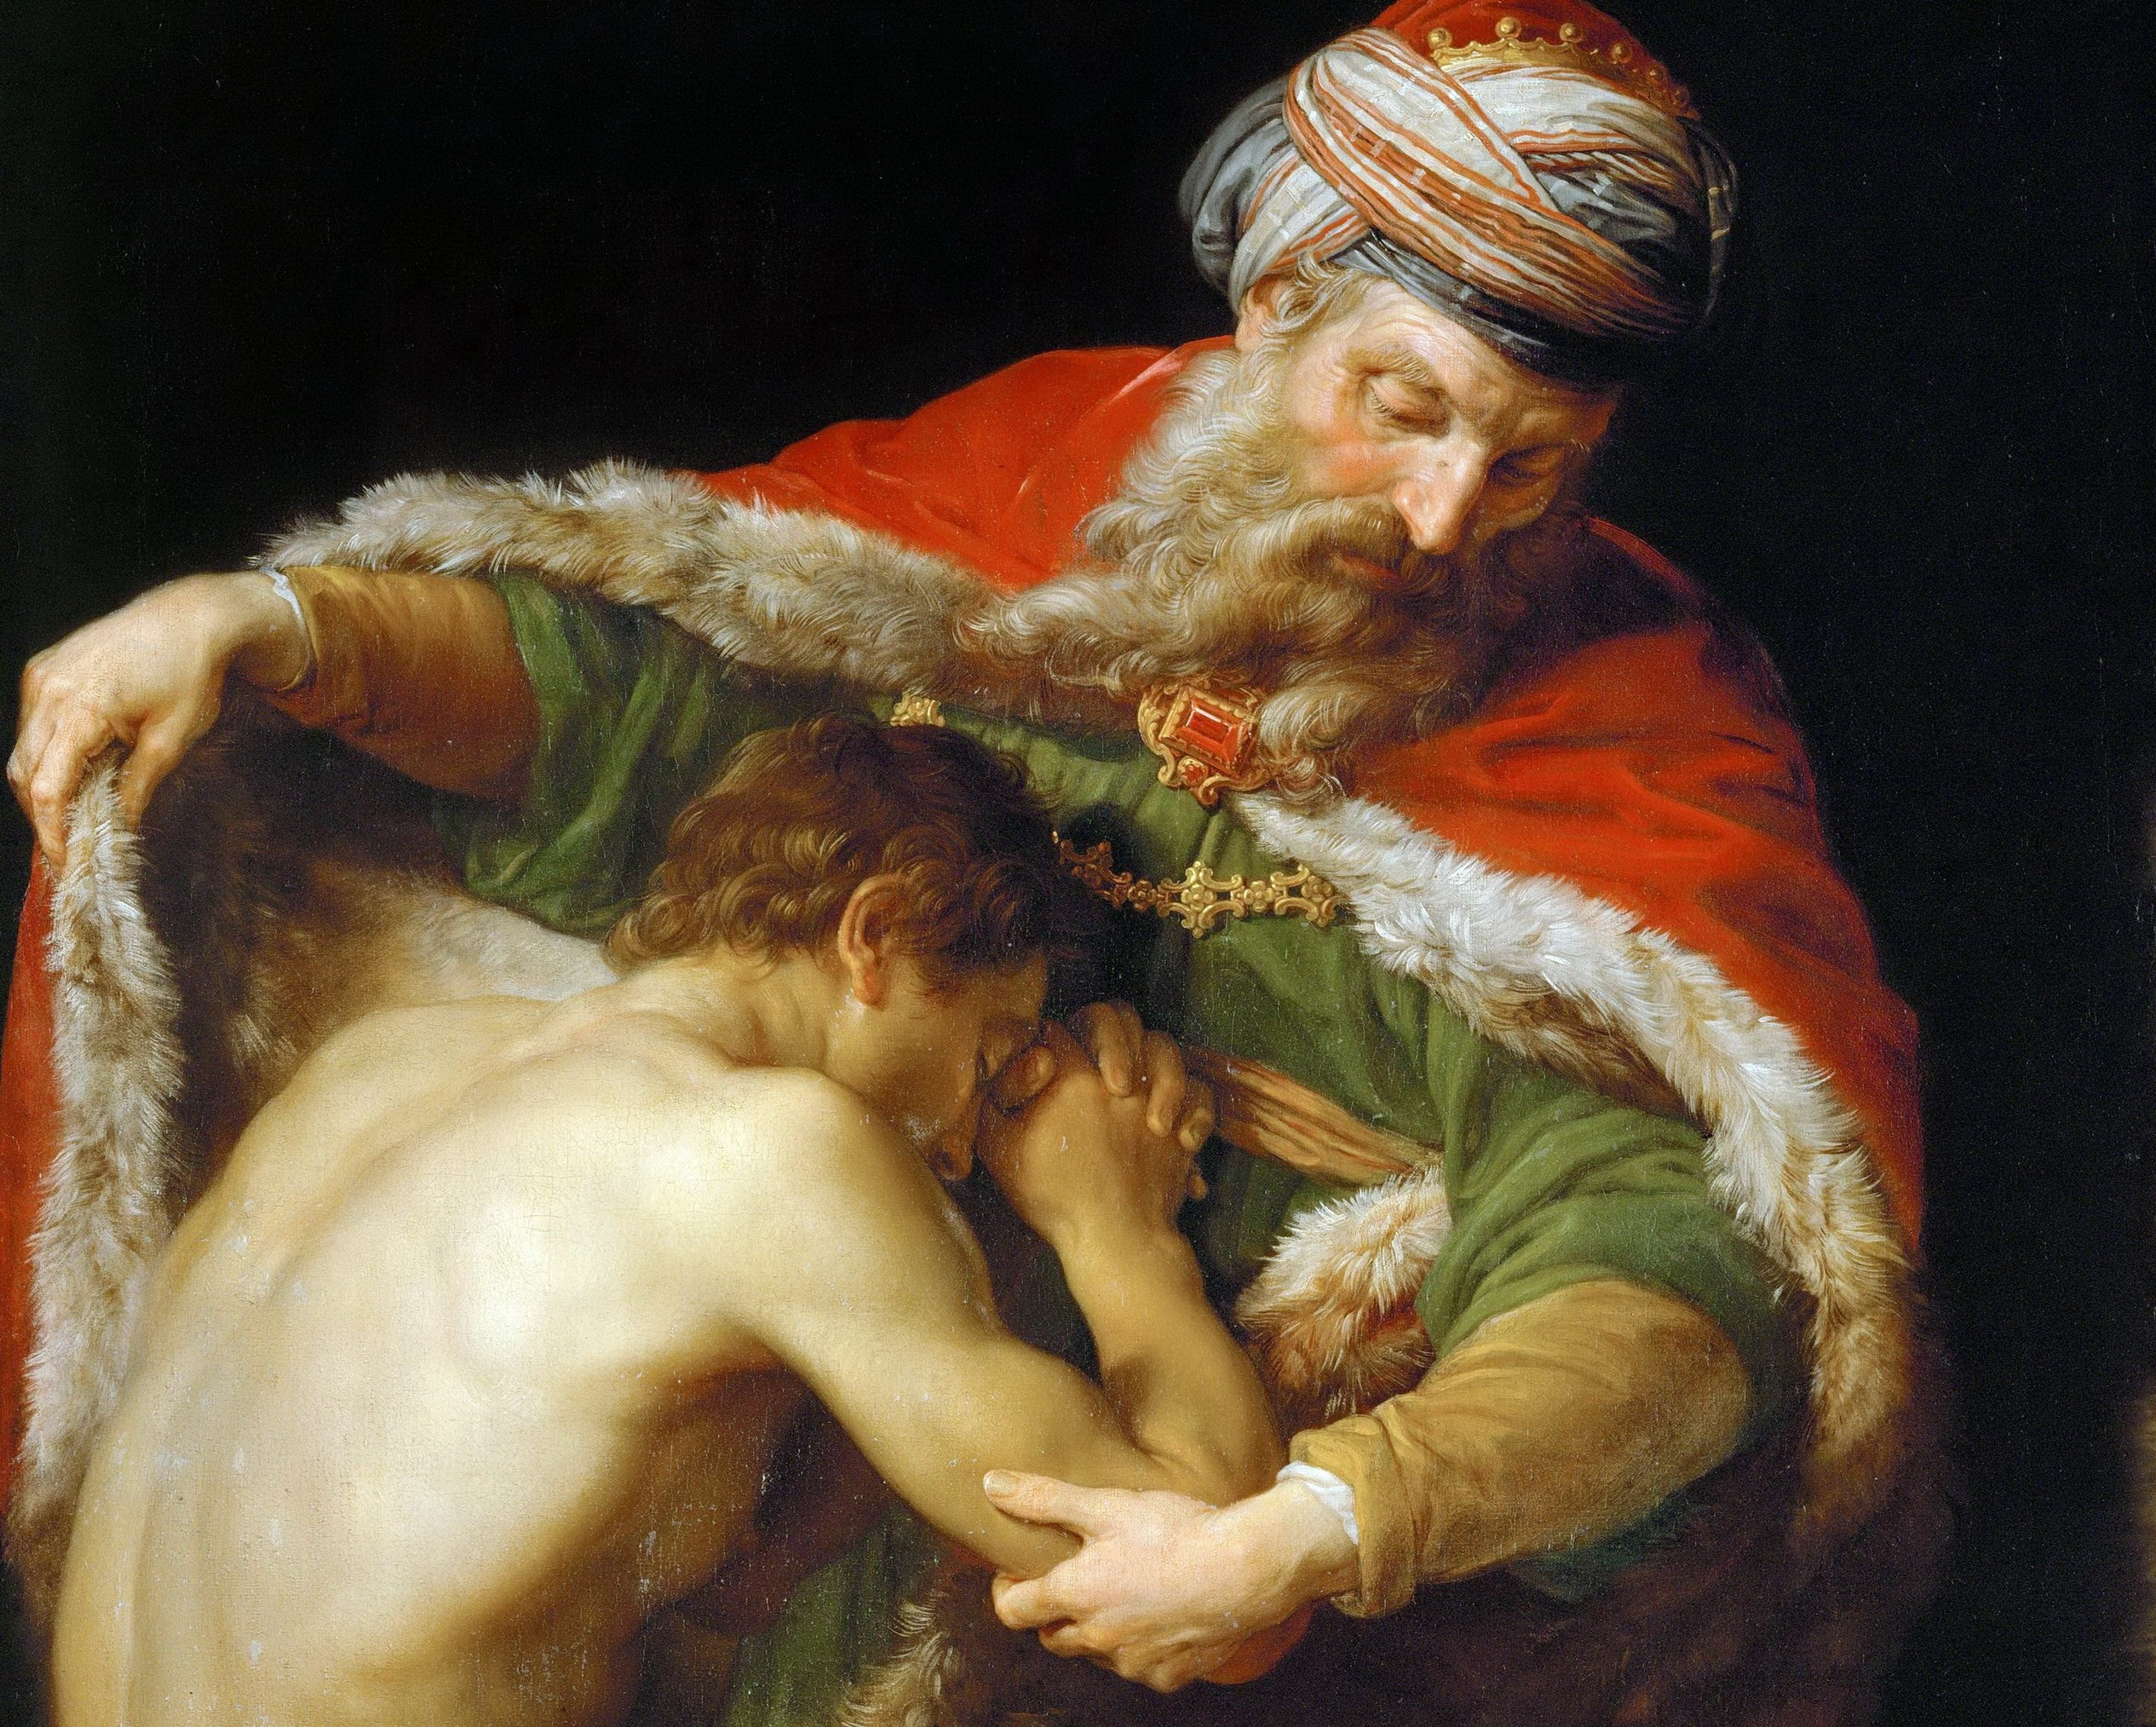 'The Return of the Prodigal Son': Love and Forgiveness